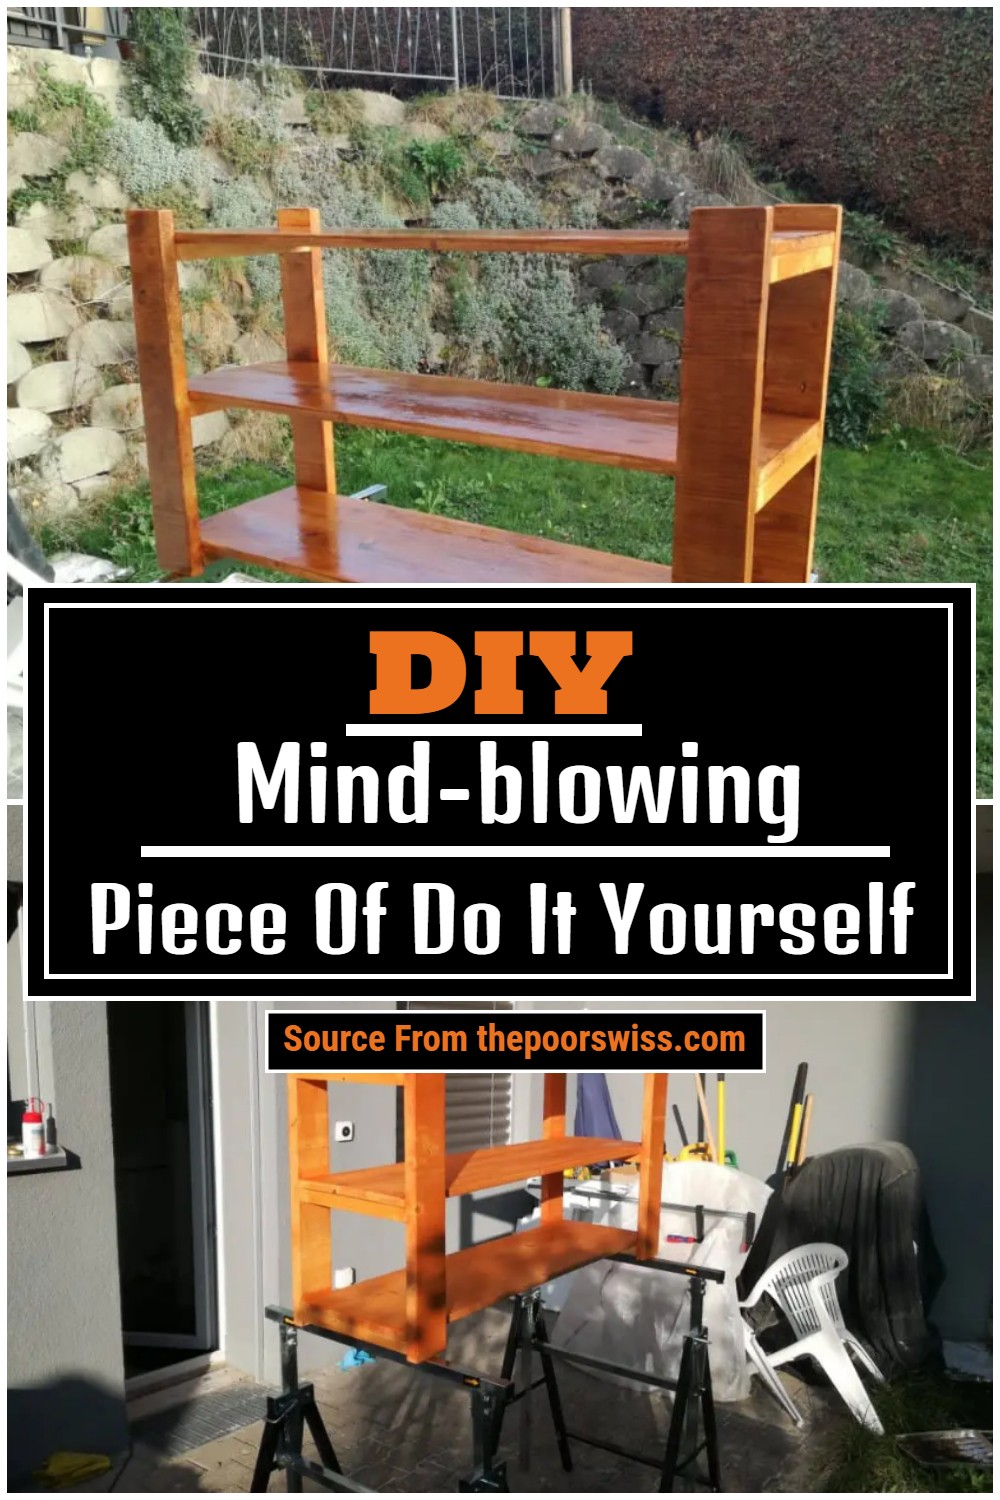 DIY Mind-blowing Piece Of Do It Yourself